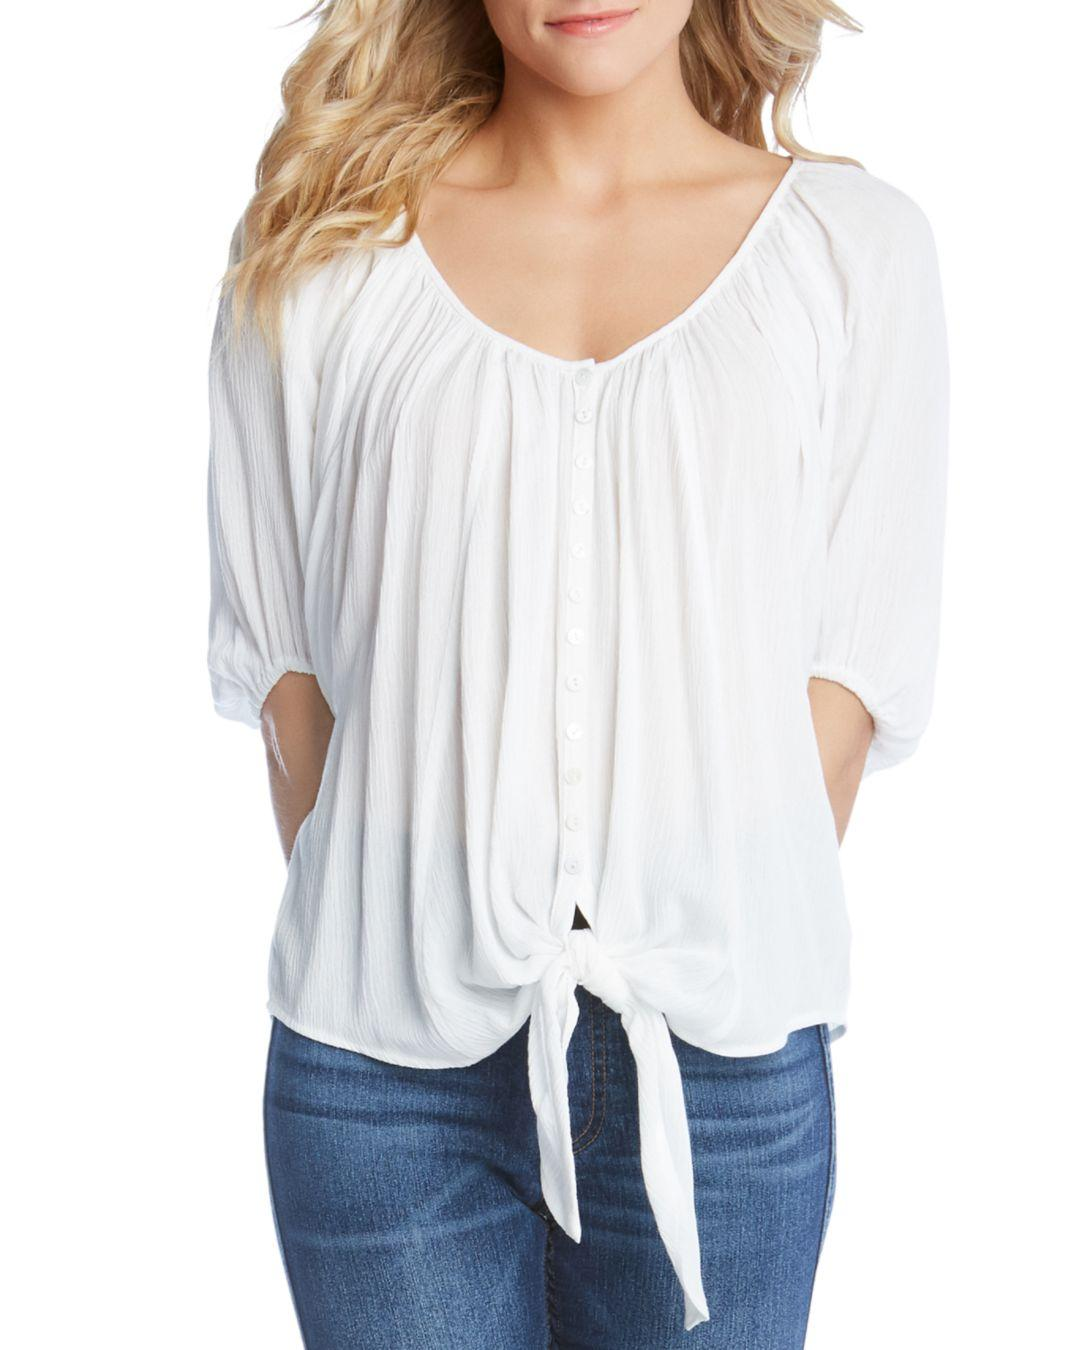 402a7ade27784c Lyst - Karen Kane Tie-front Top in White - Save 65%